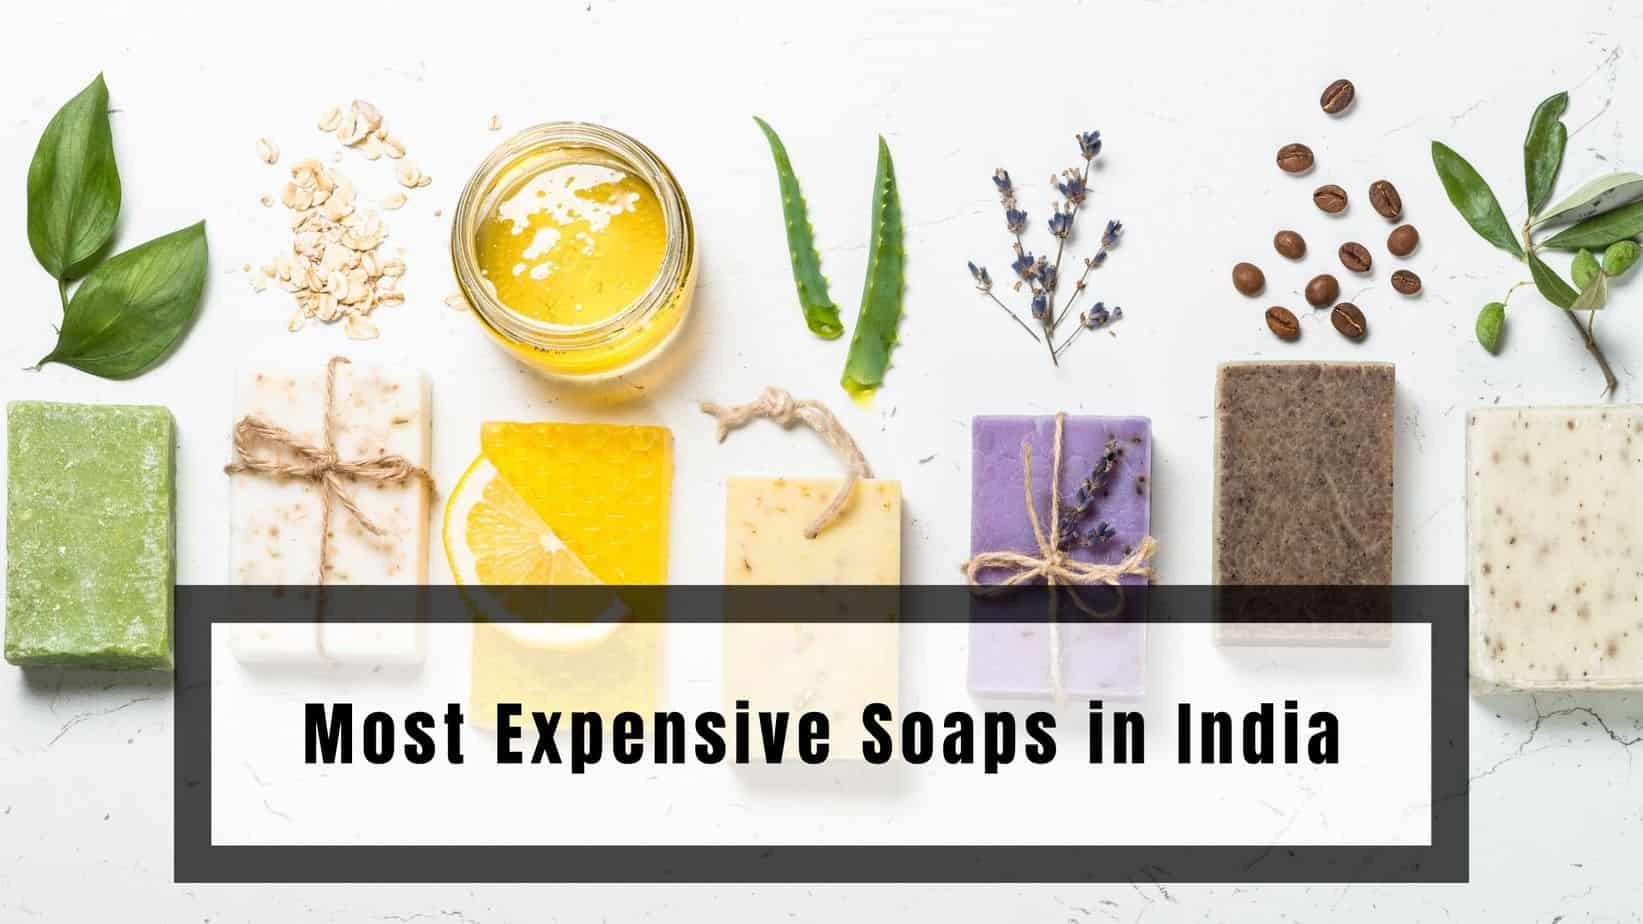 Most Expensive Soaps in India